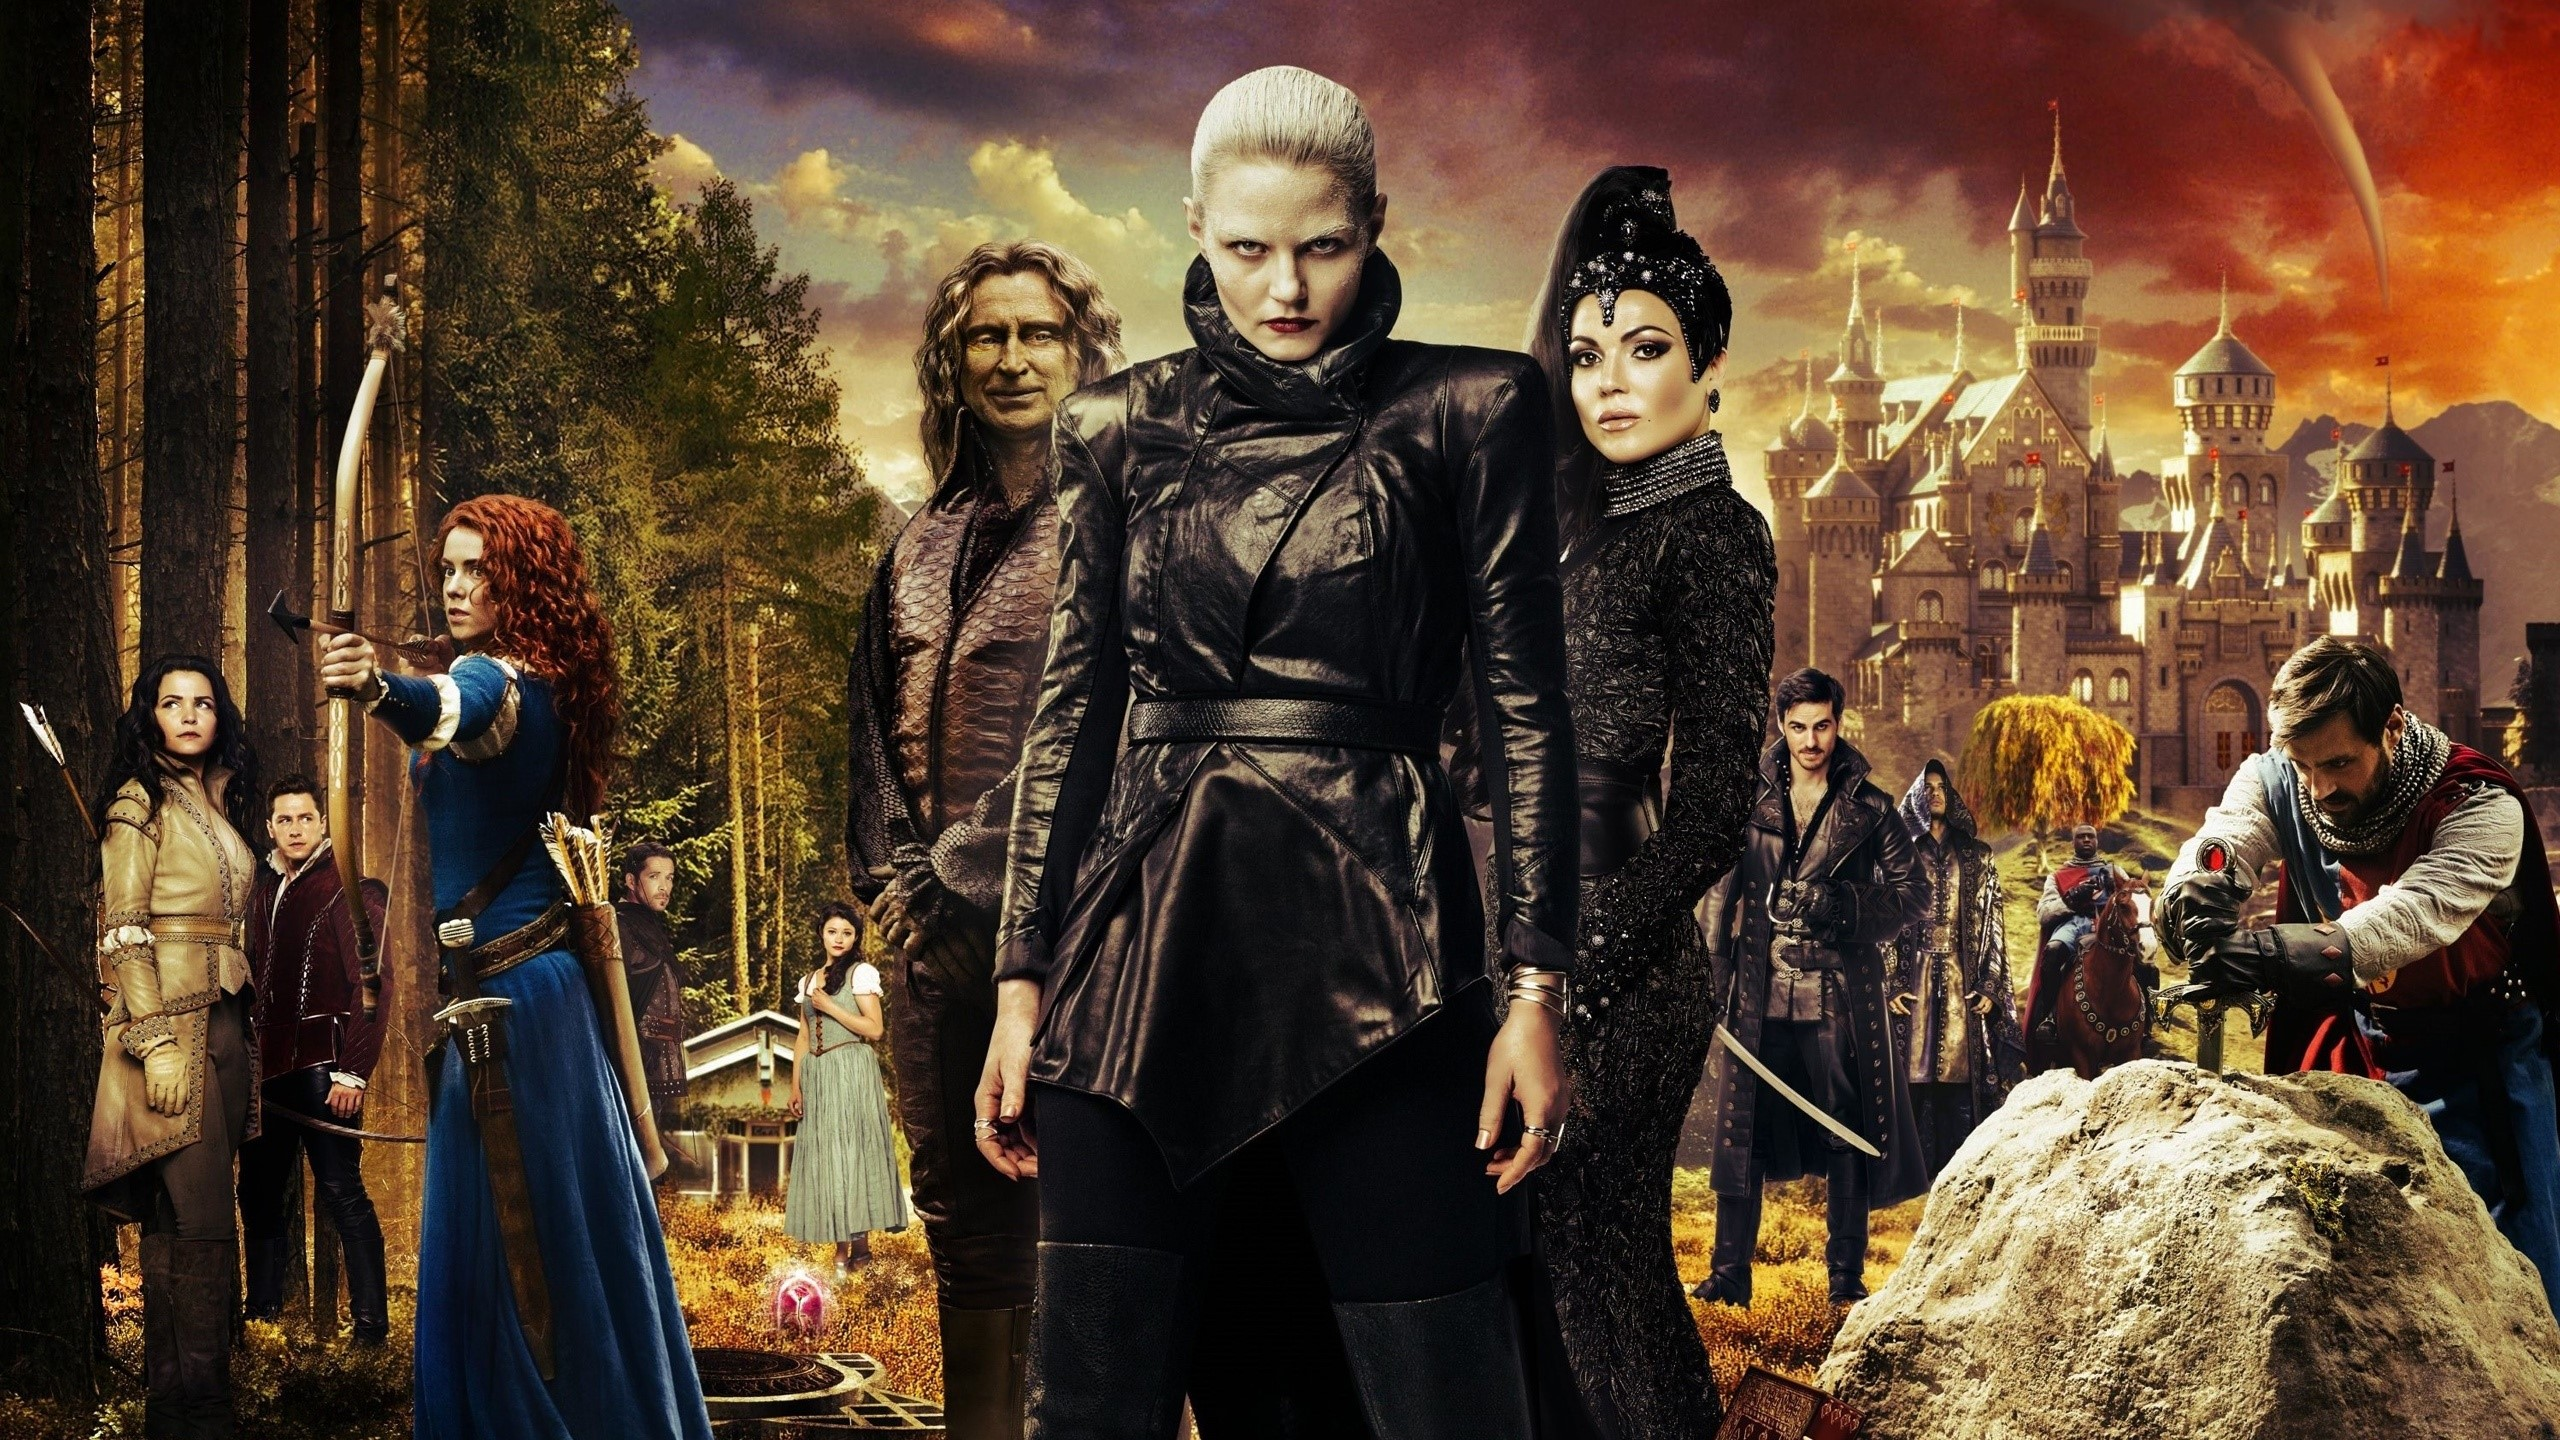 Wallpaper Season 5 of Once upon a time